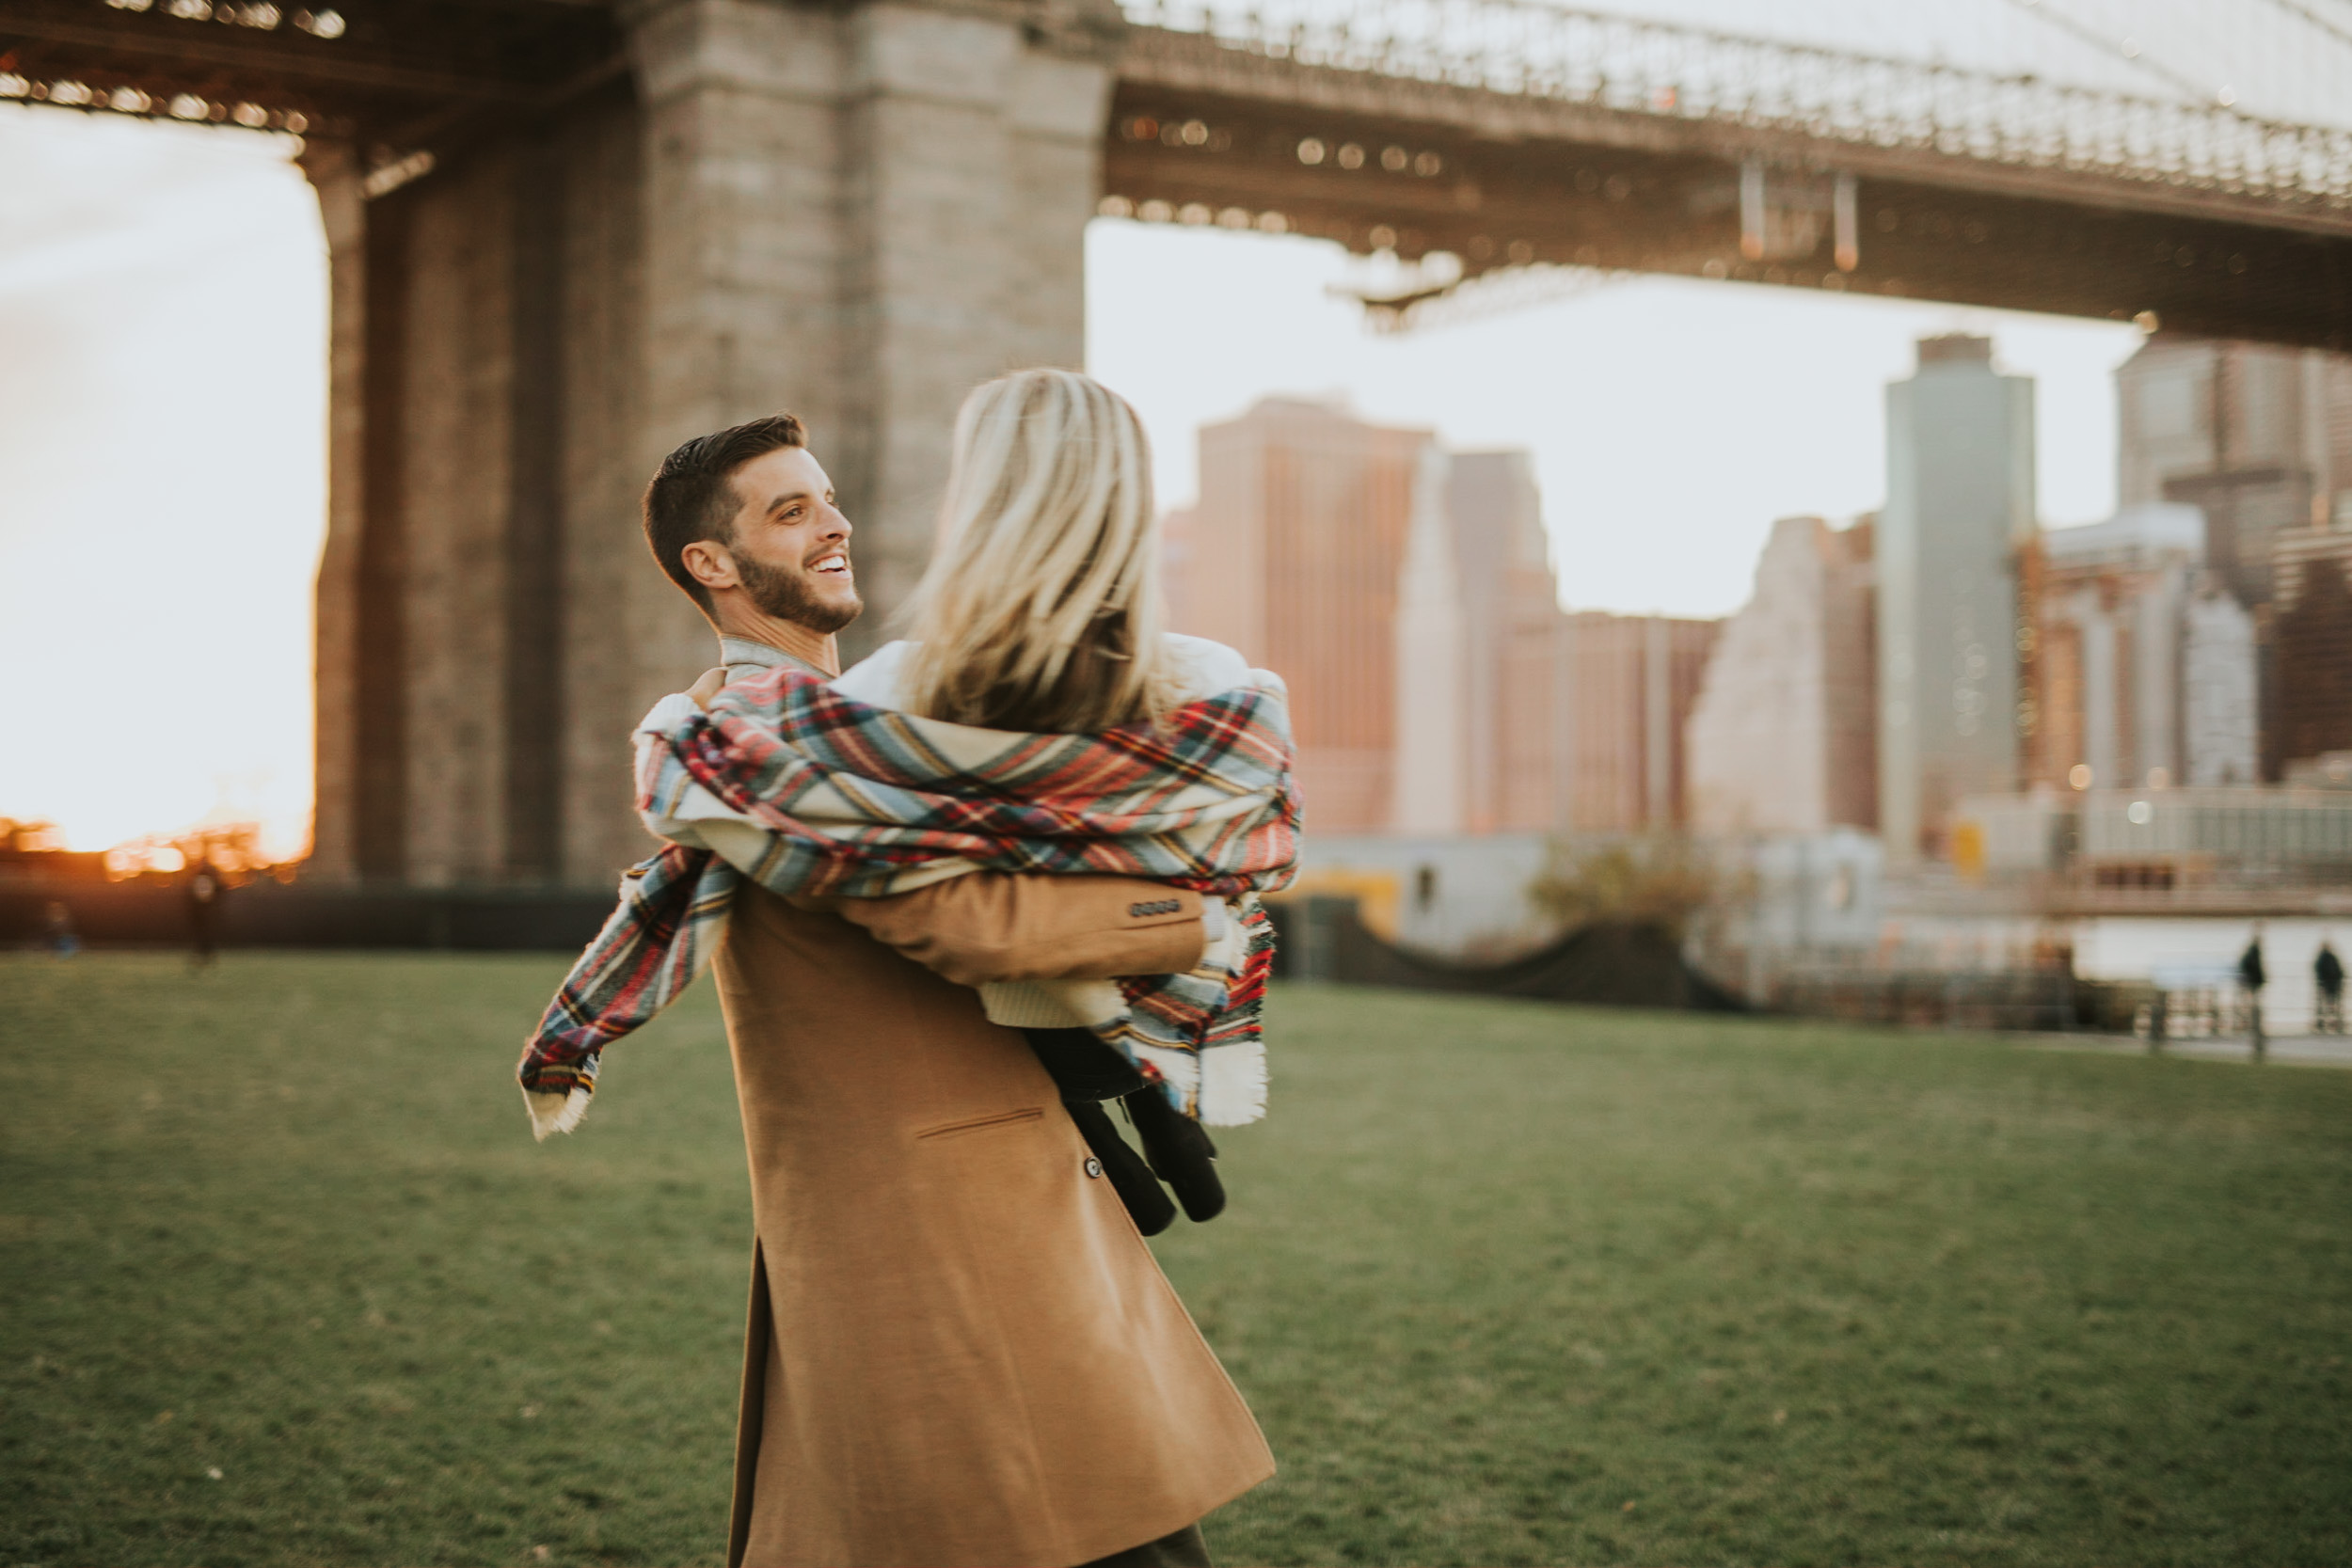 Colorful Fall NYC Engagement Session_Polly C Photography 1721162725.jpg